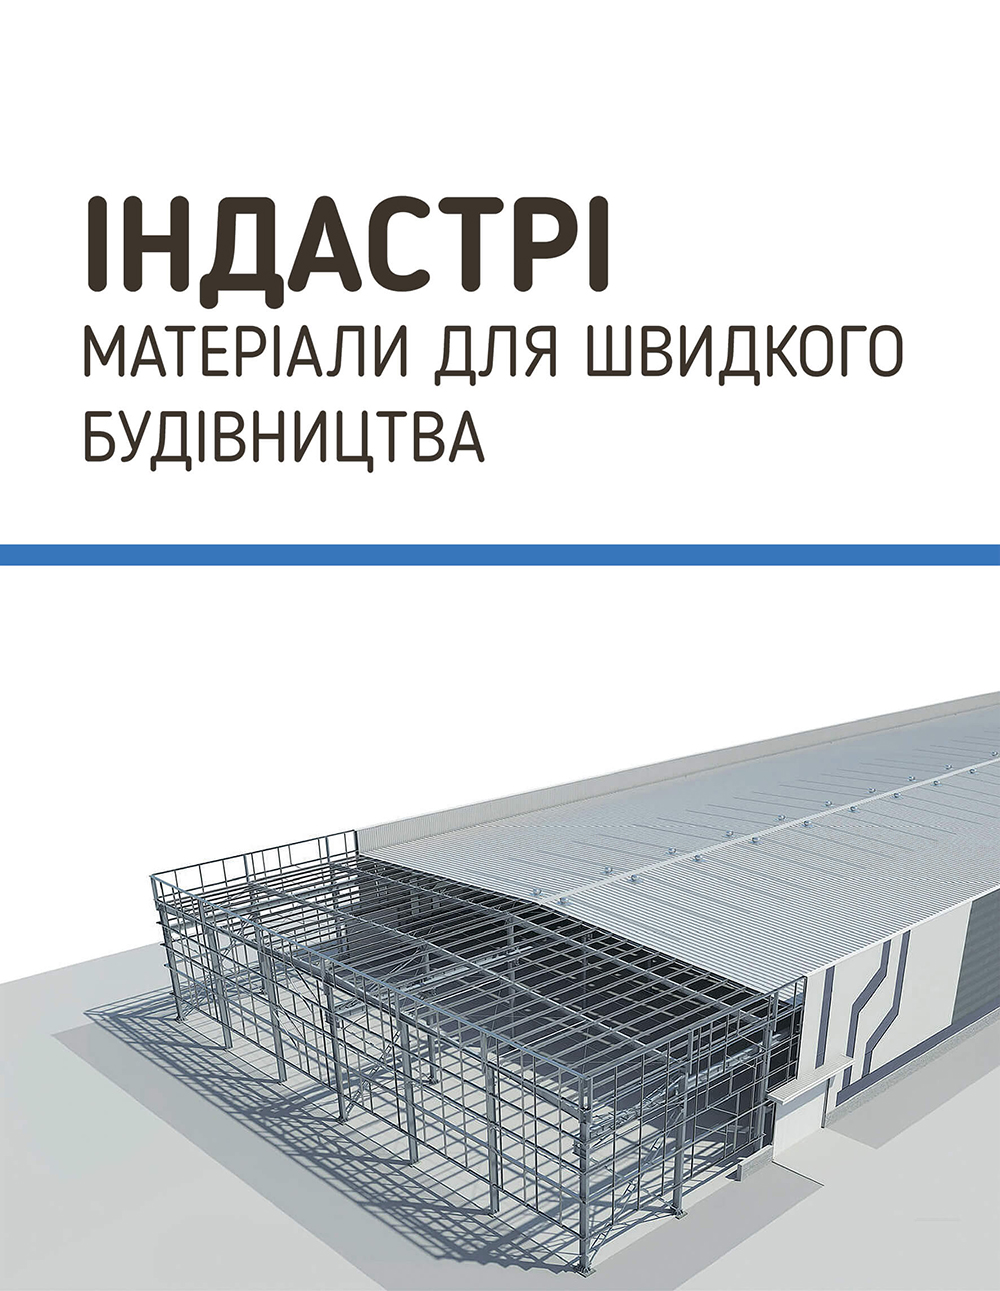 Catalog of materials for rapid construction